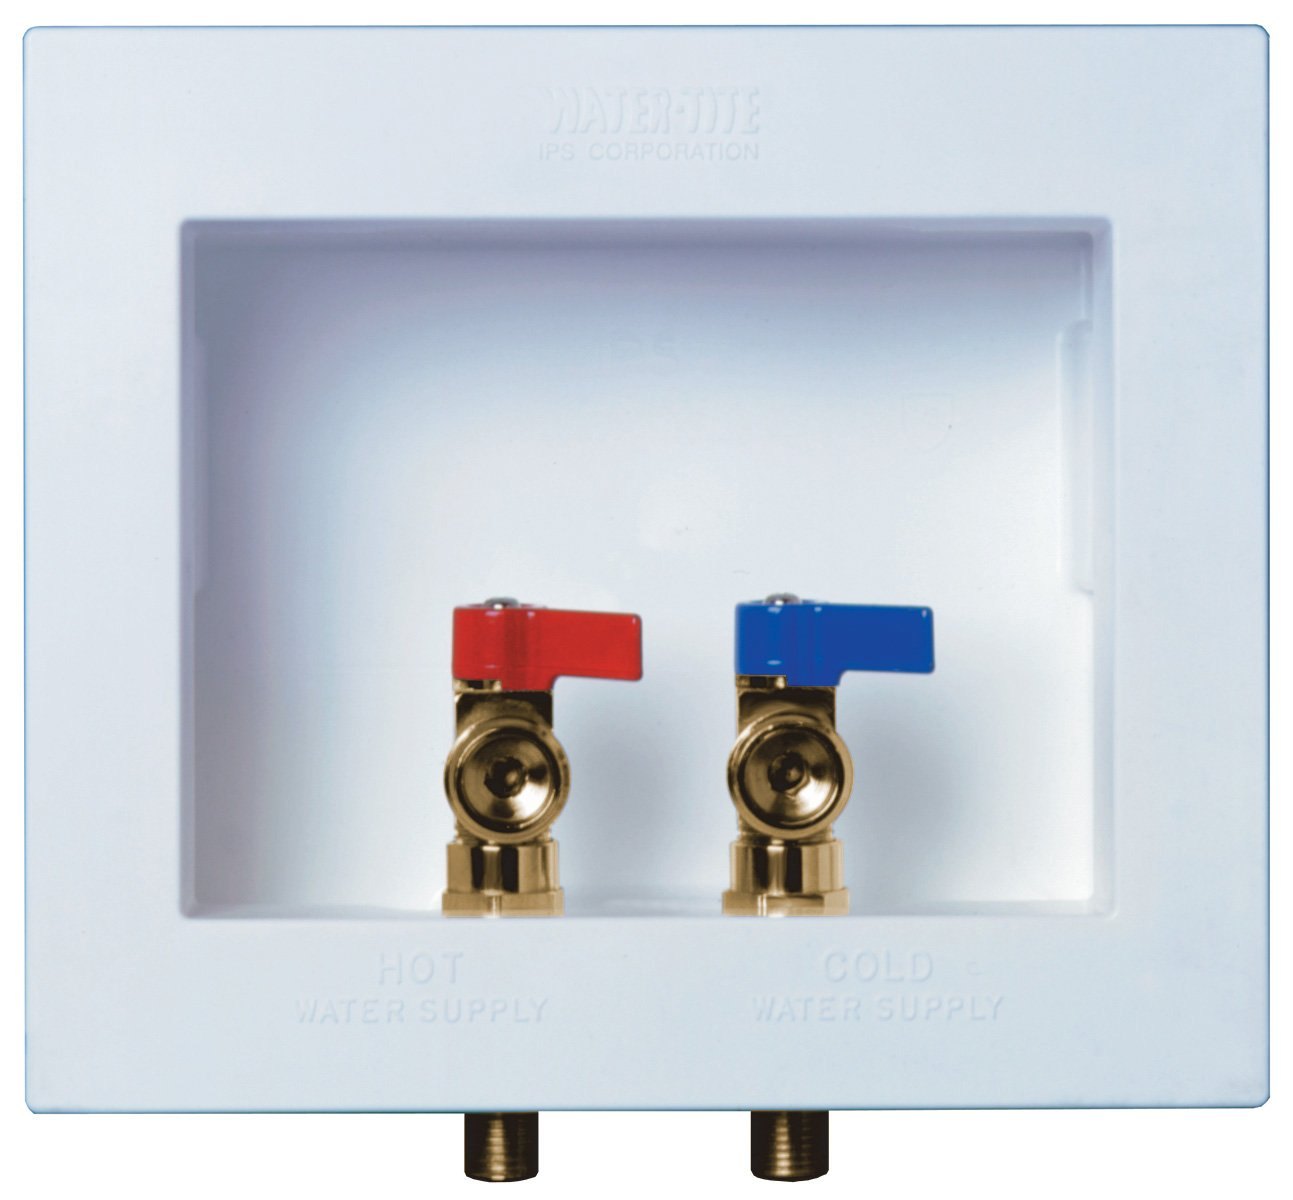 "Water-Tite Du-All Dual Drain Washing Machine Outlet Box with Brass Qtr-turn Valves, Installed, 1/2"" CPVC Conx"